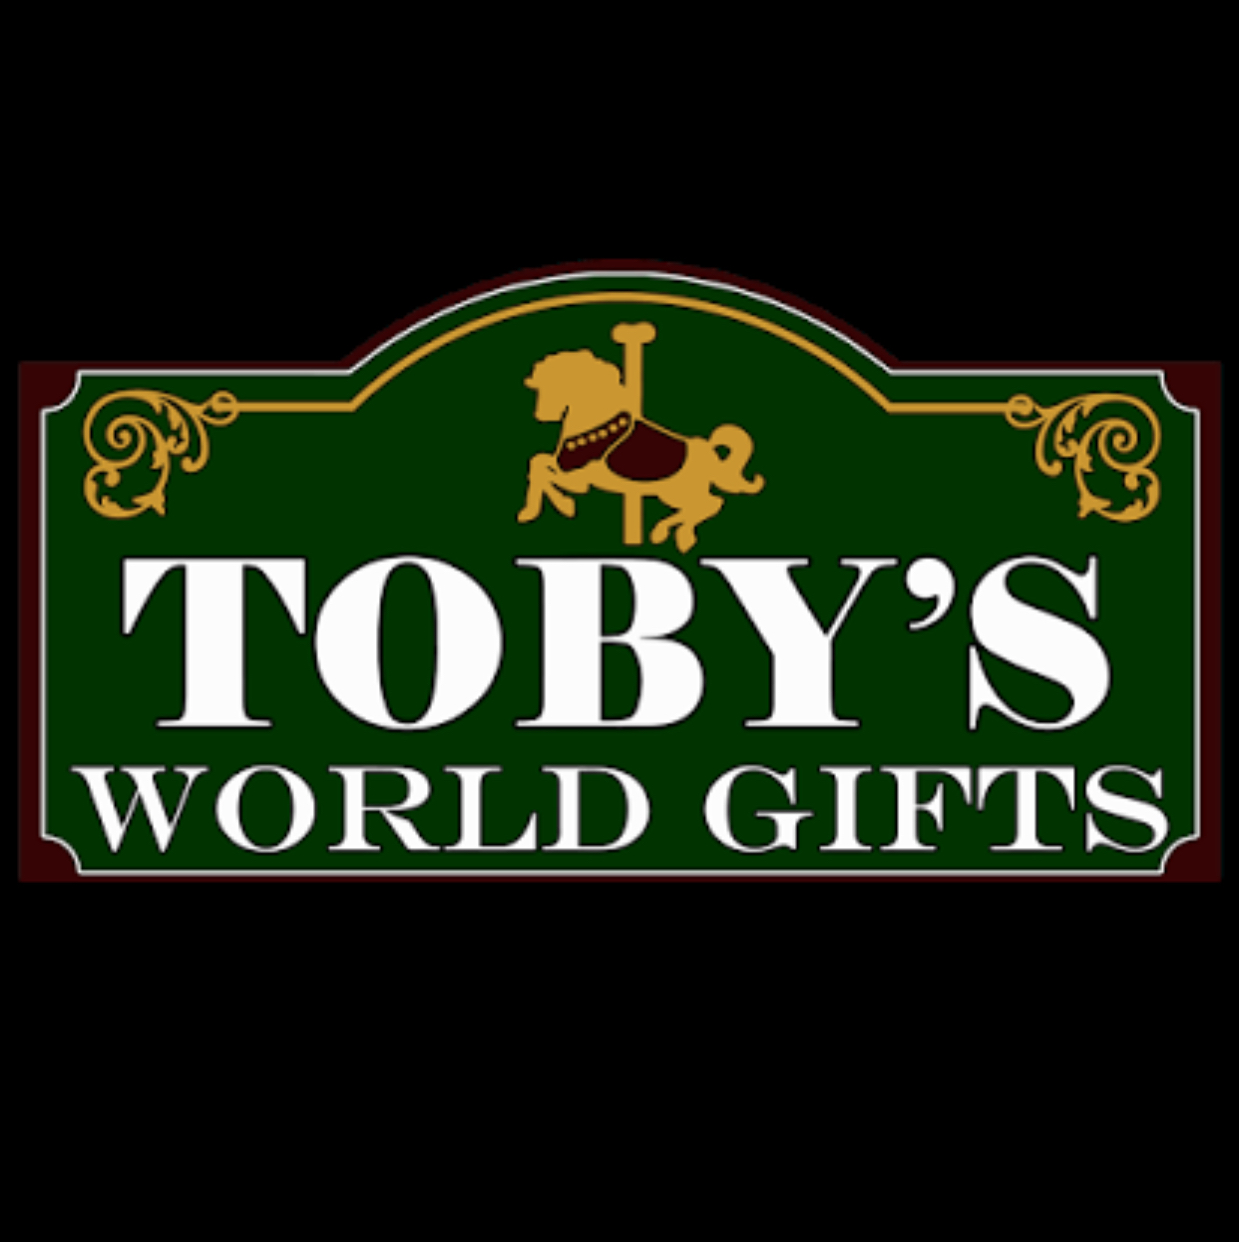 Toby's World Gifts